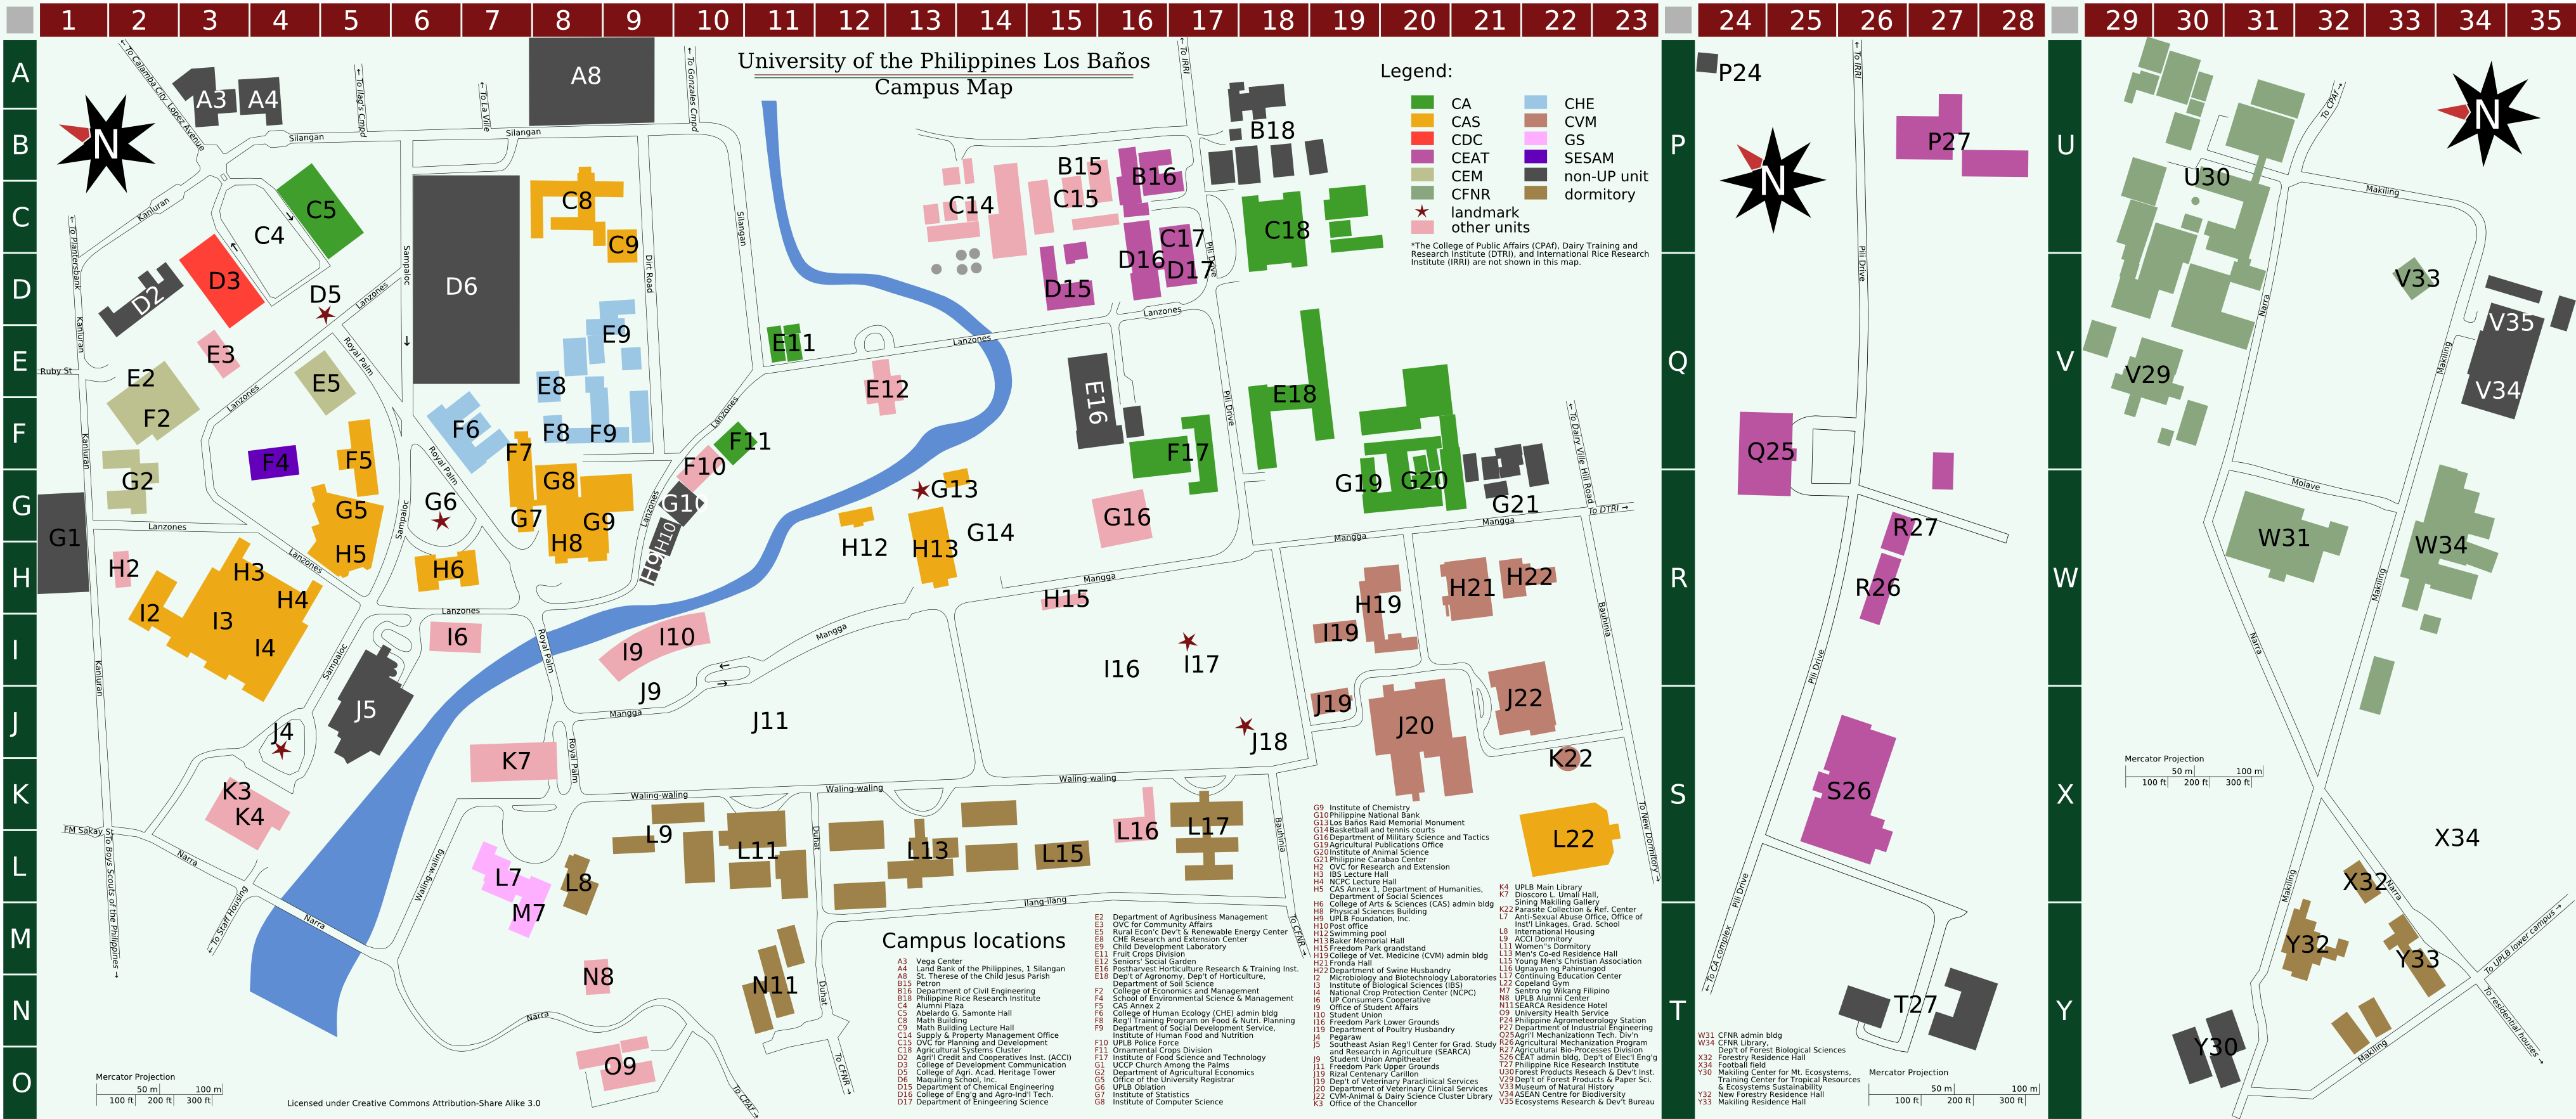 File:UPLB Campus map.png - Wikimedia Commons